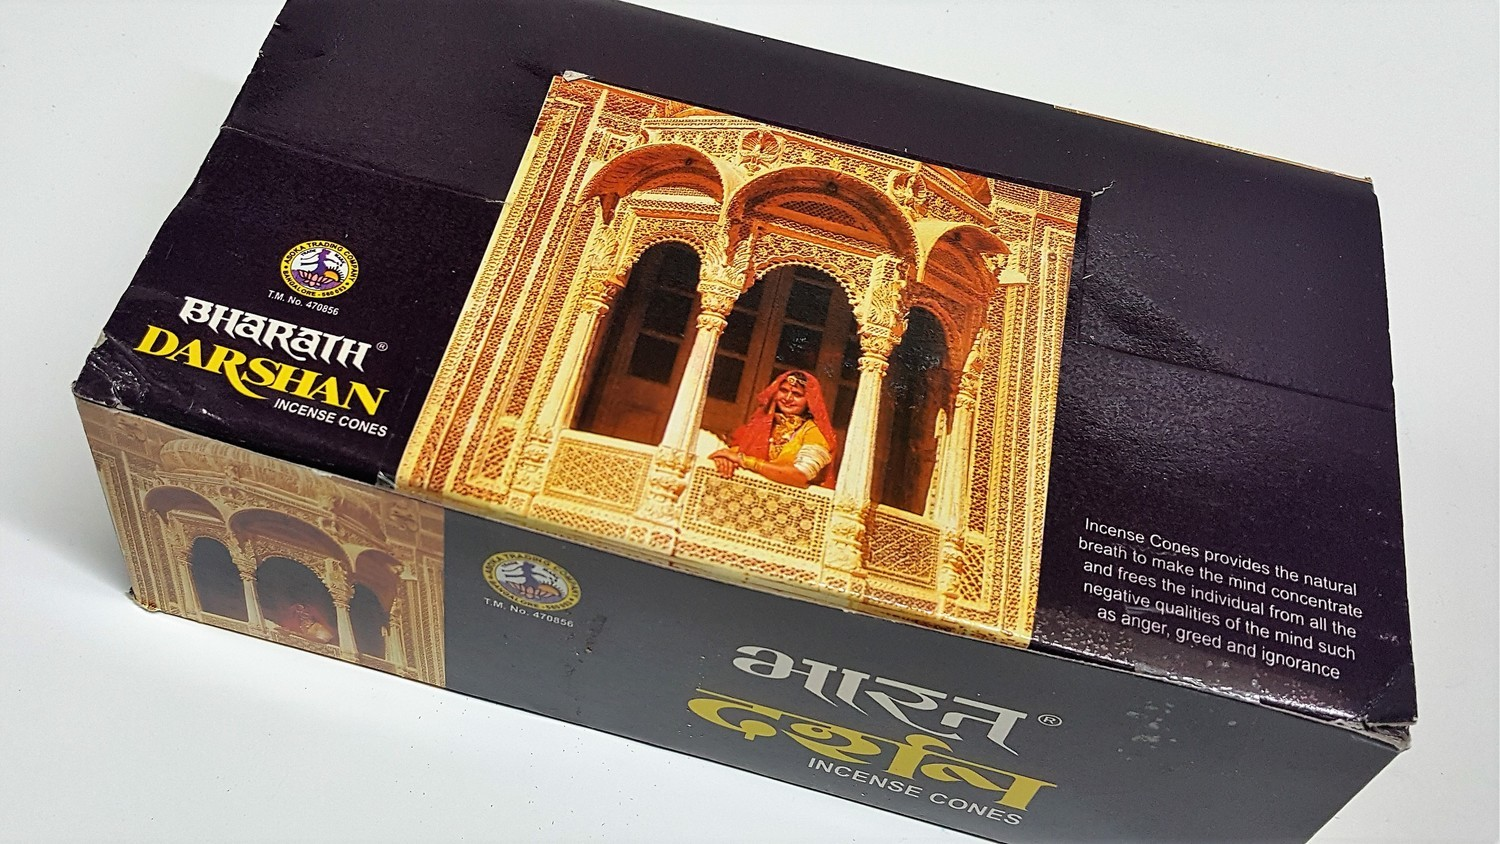 ​Darshan Bharath Quality Incense Cones